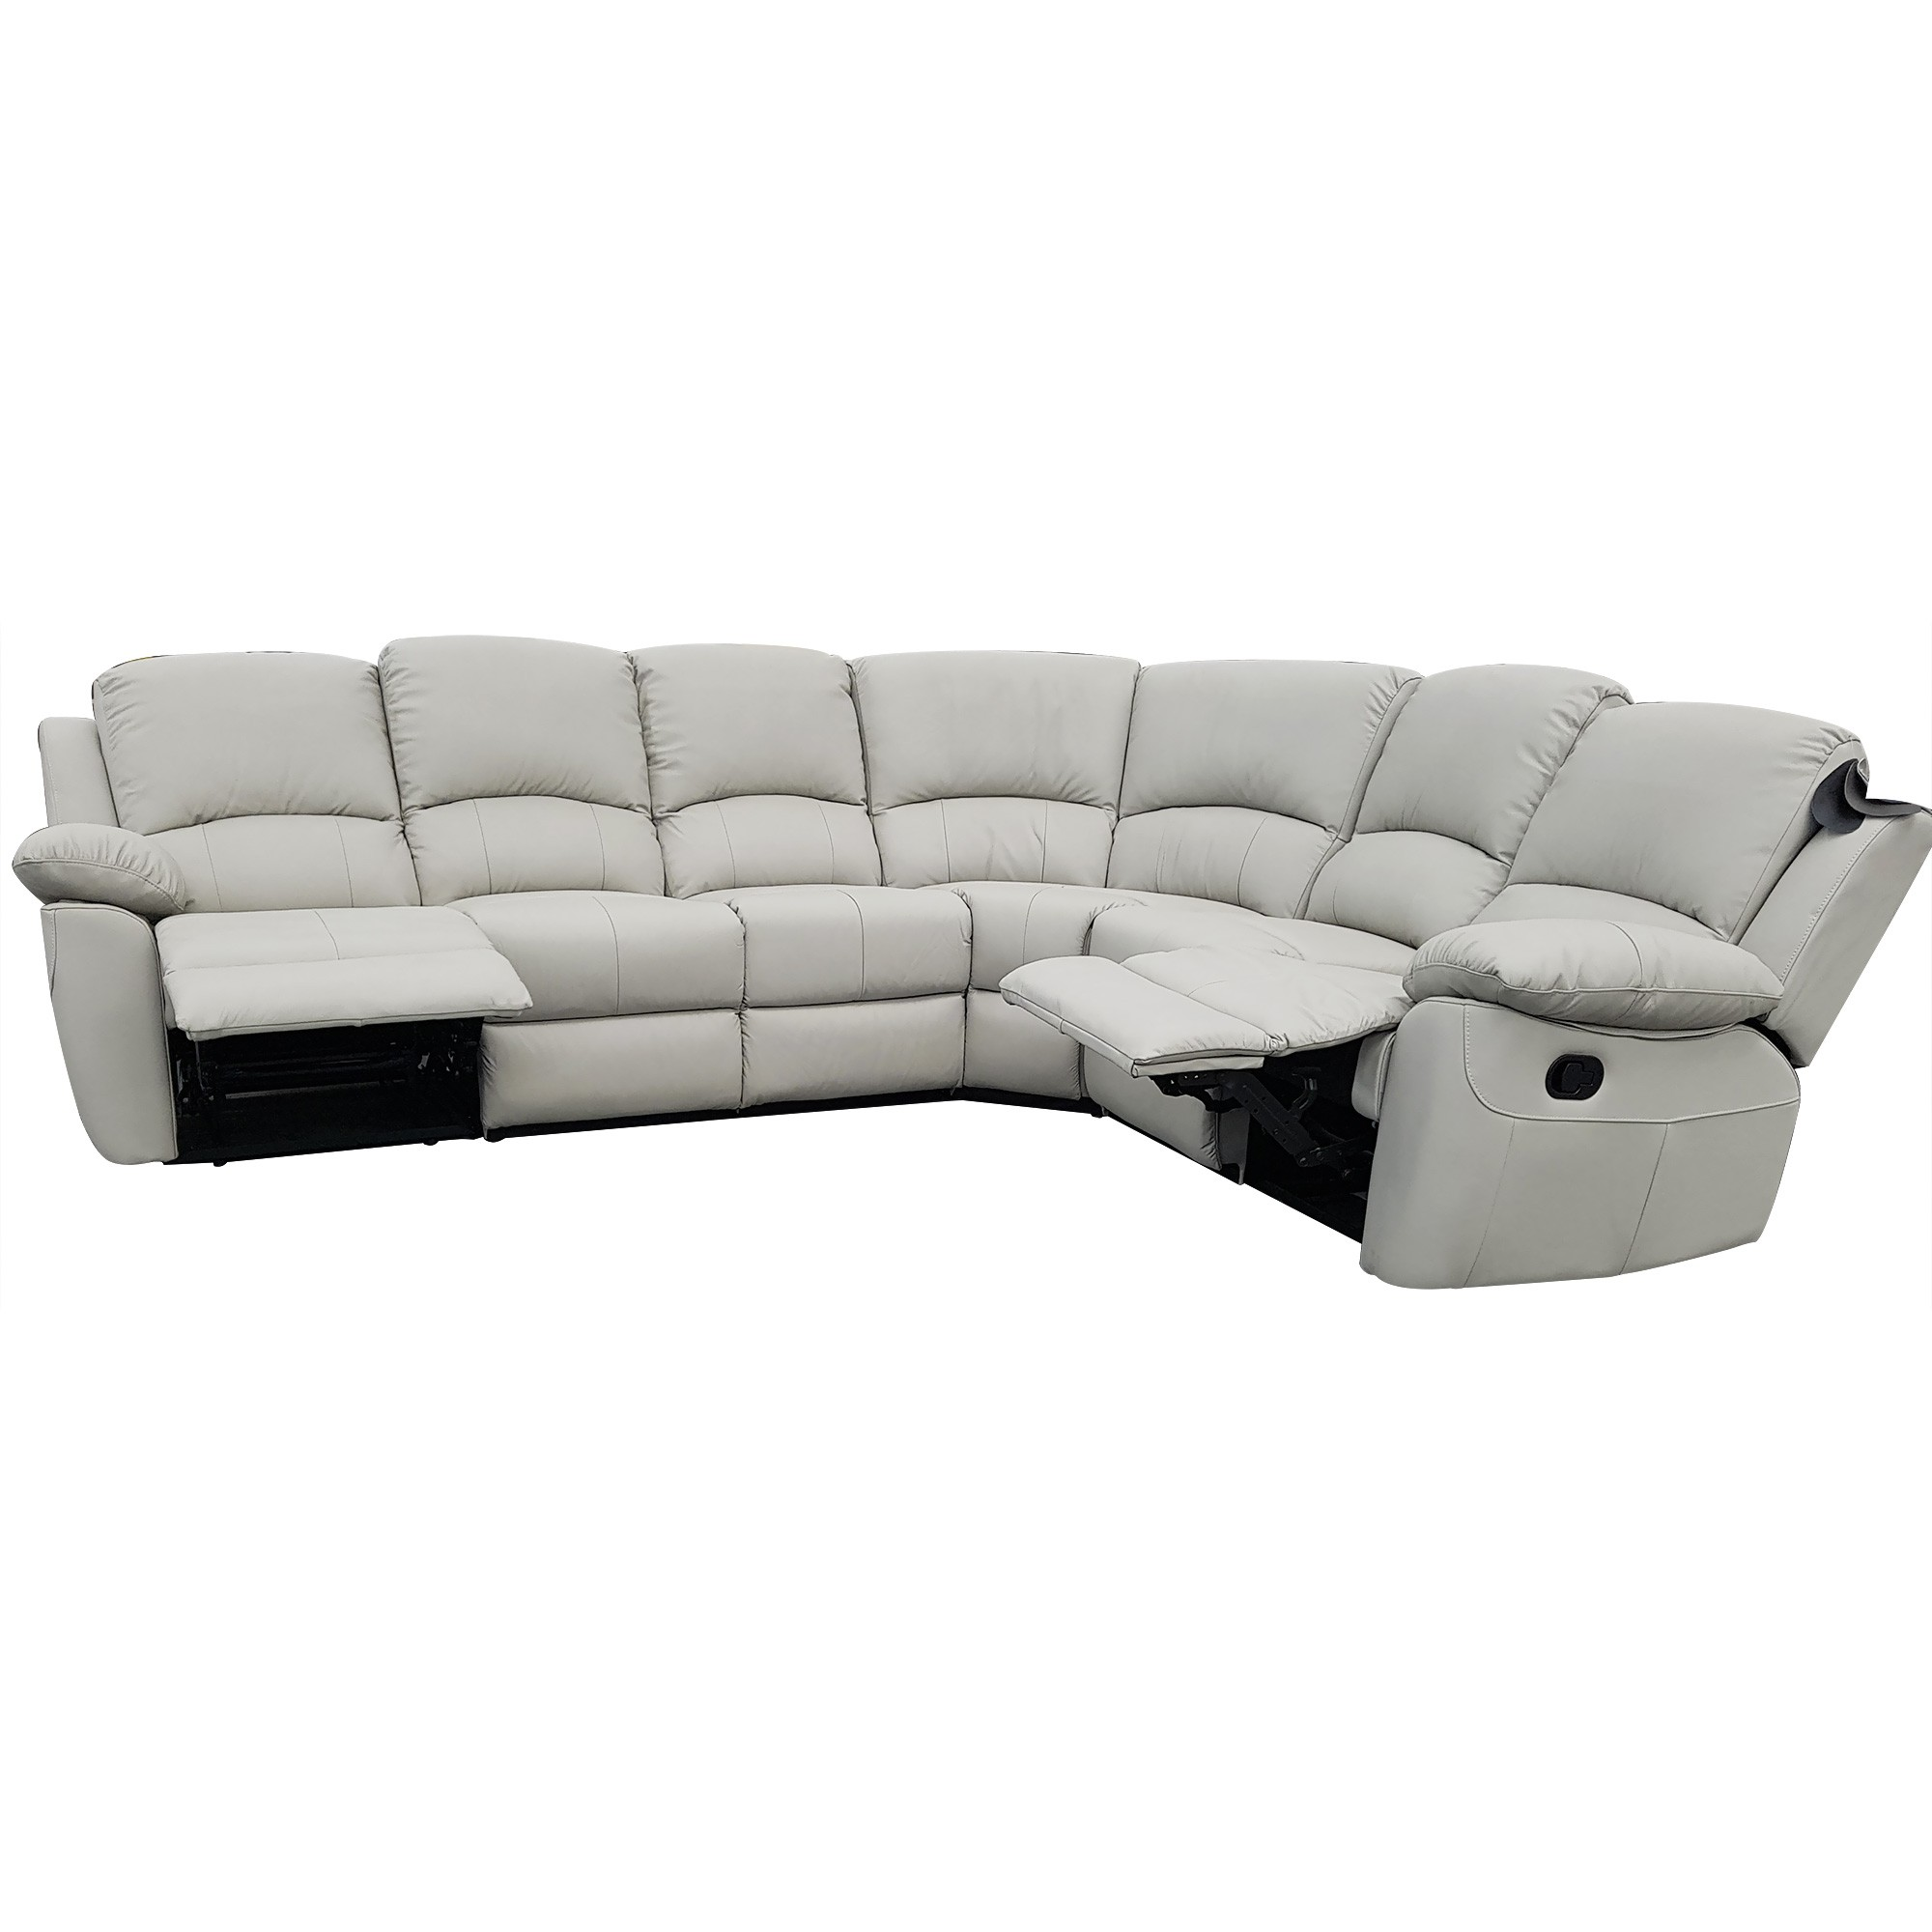 Connie Leather 5 Seater Corner Recliner Sofa, Mist